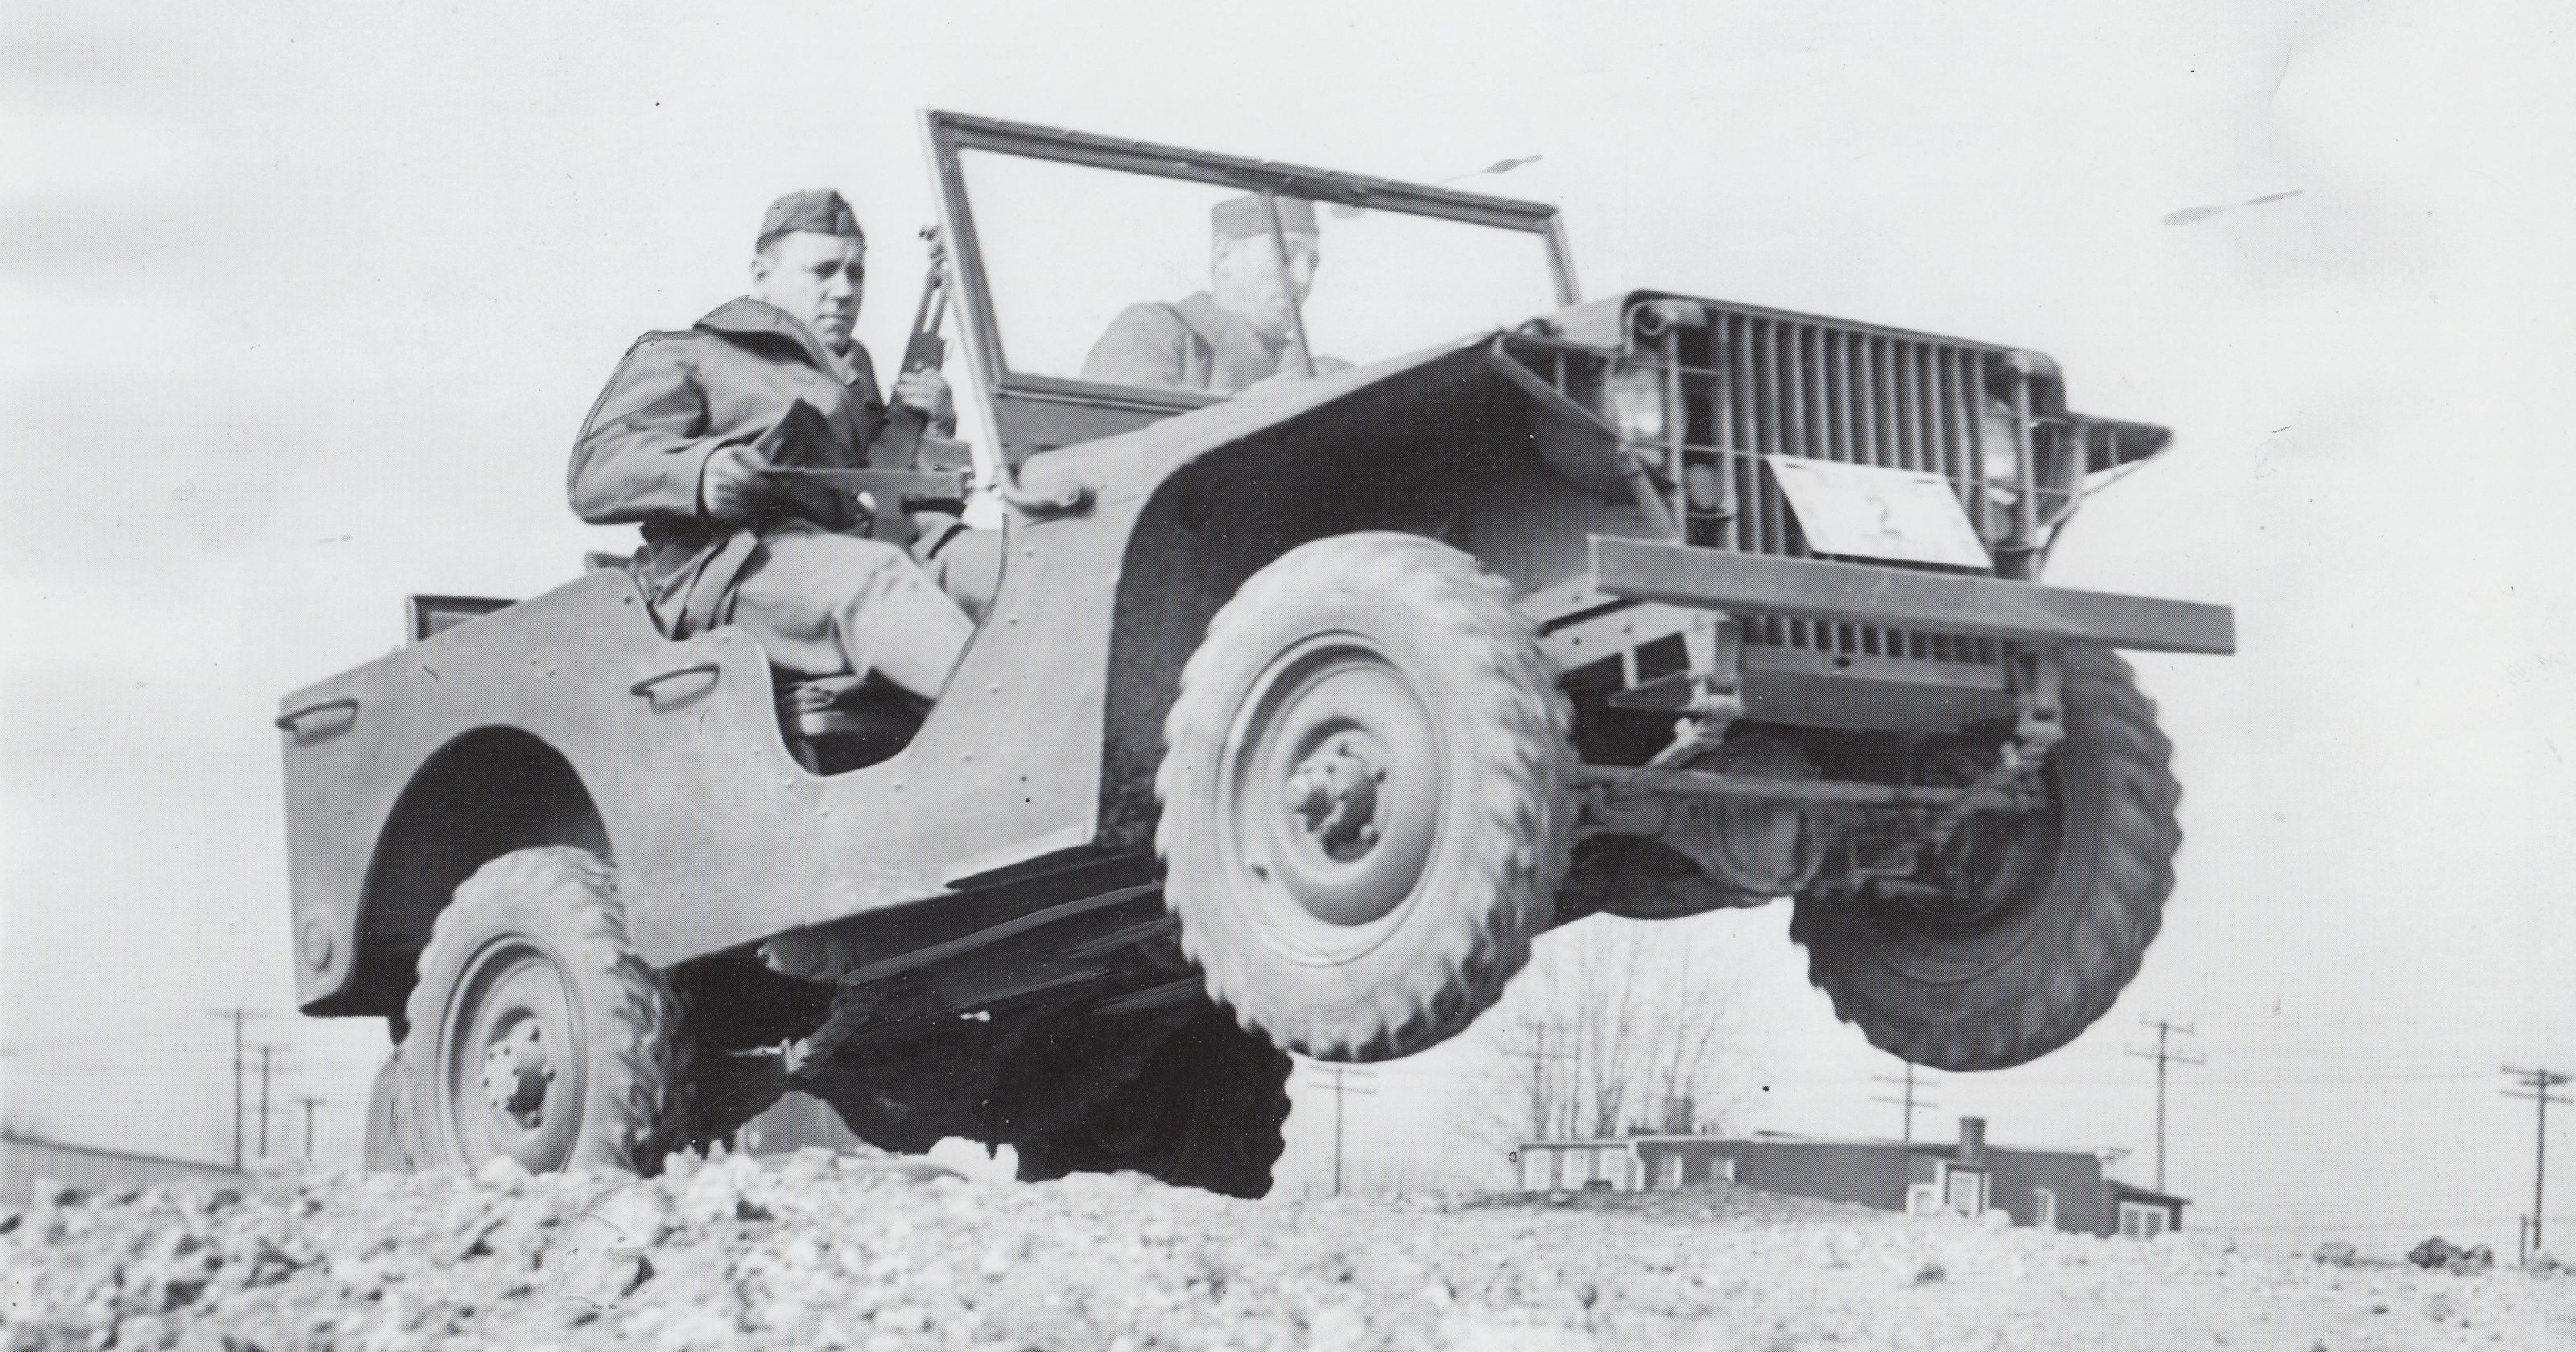 On November 11 1940 In Leadership History The Jeep Made Its Debut Today Jeep S Purpose And Philosophy Is Rugged Off Road Capabil Jeep Old Jeep Willys Jeep